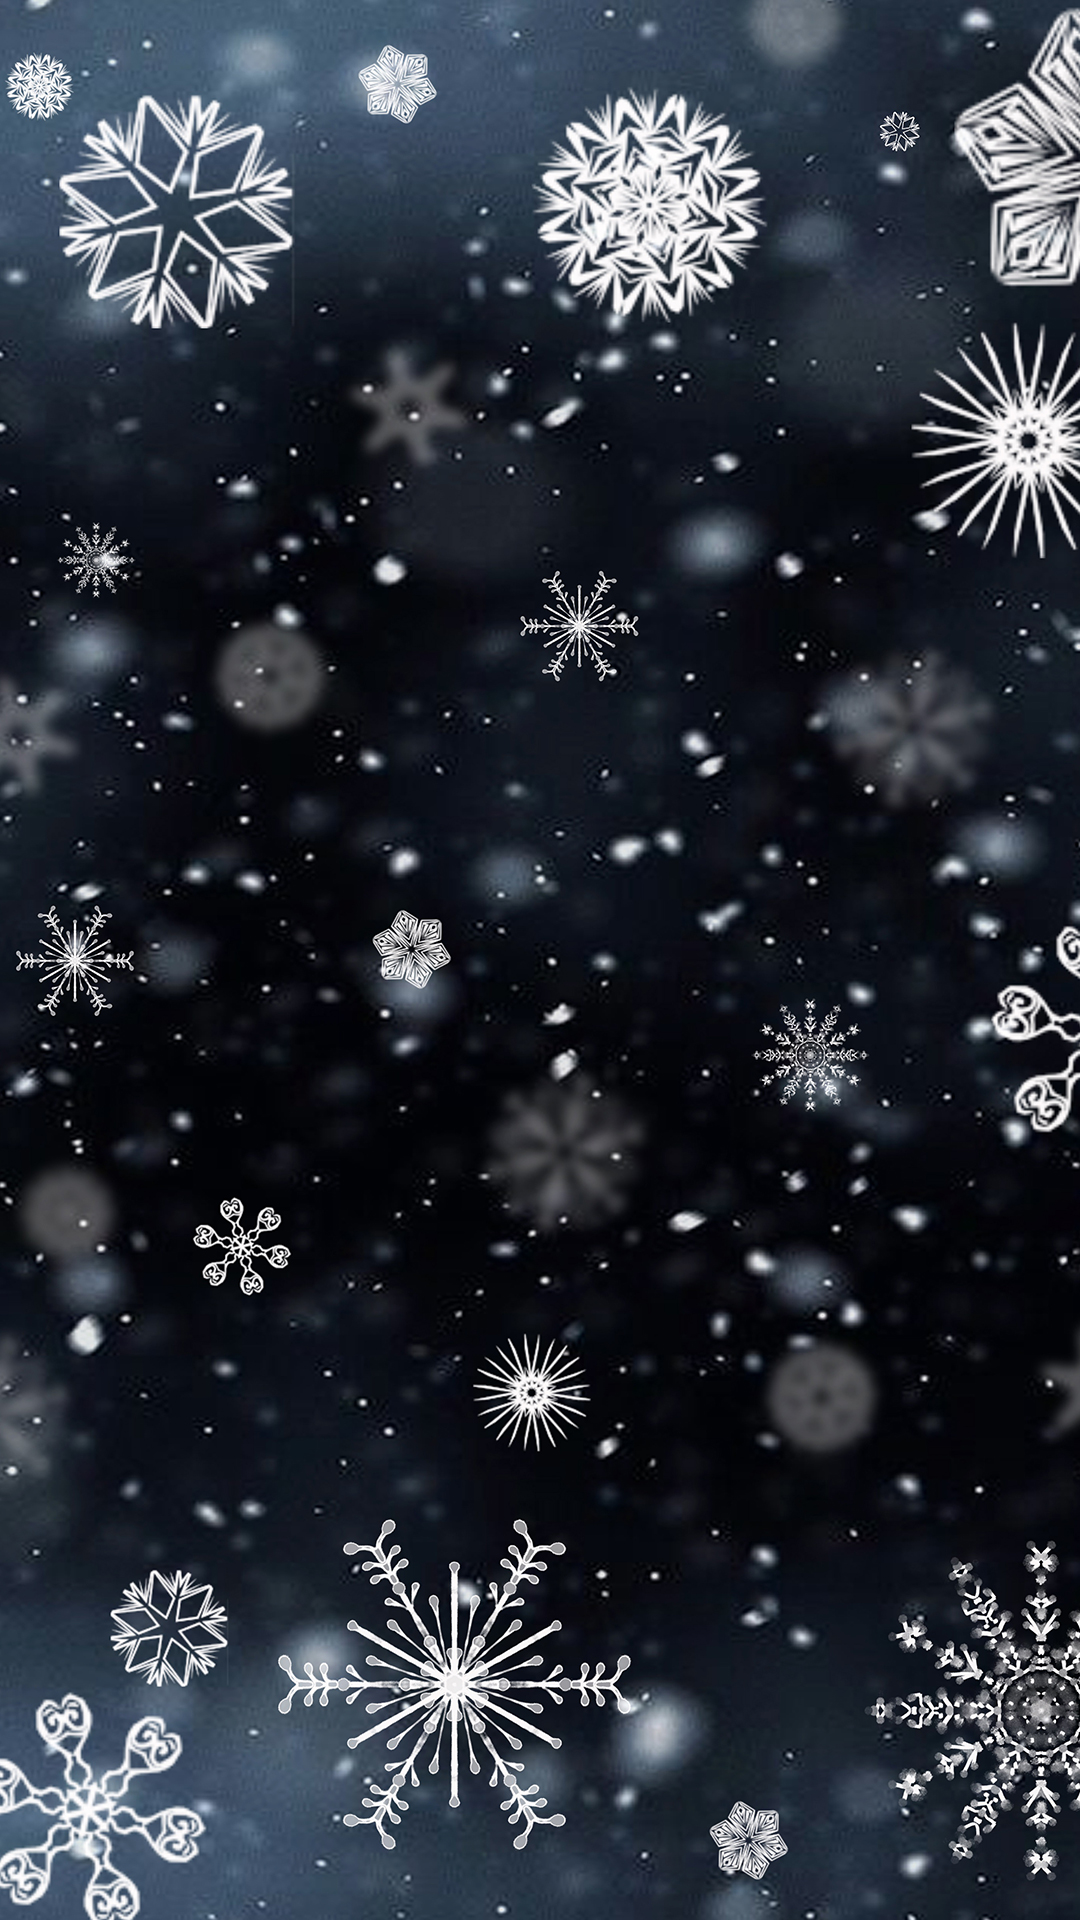 Falling Snow Wallpaper Iphone 5 Snowflakes Hd Wallpaper For Your Mobile Phone